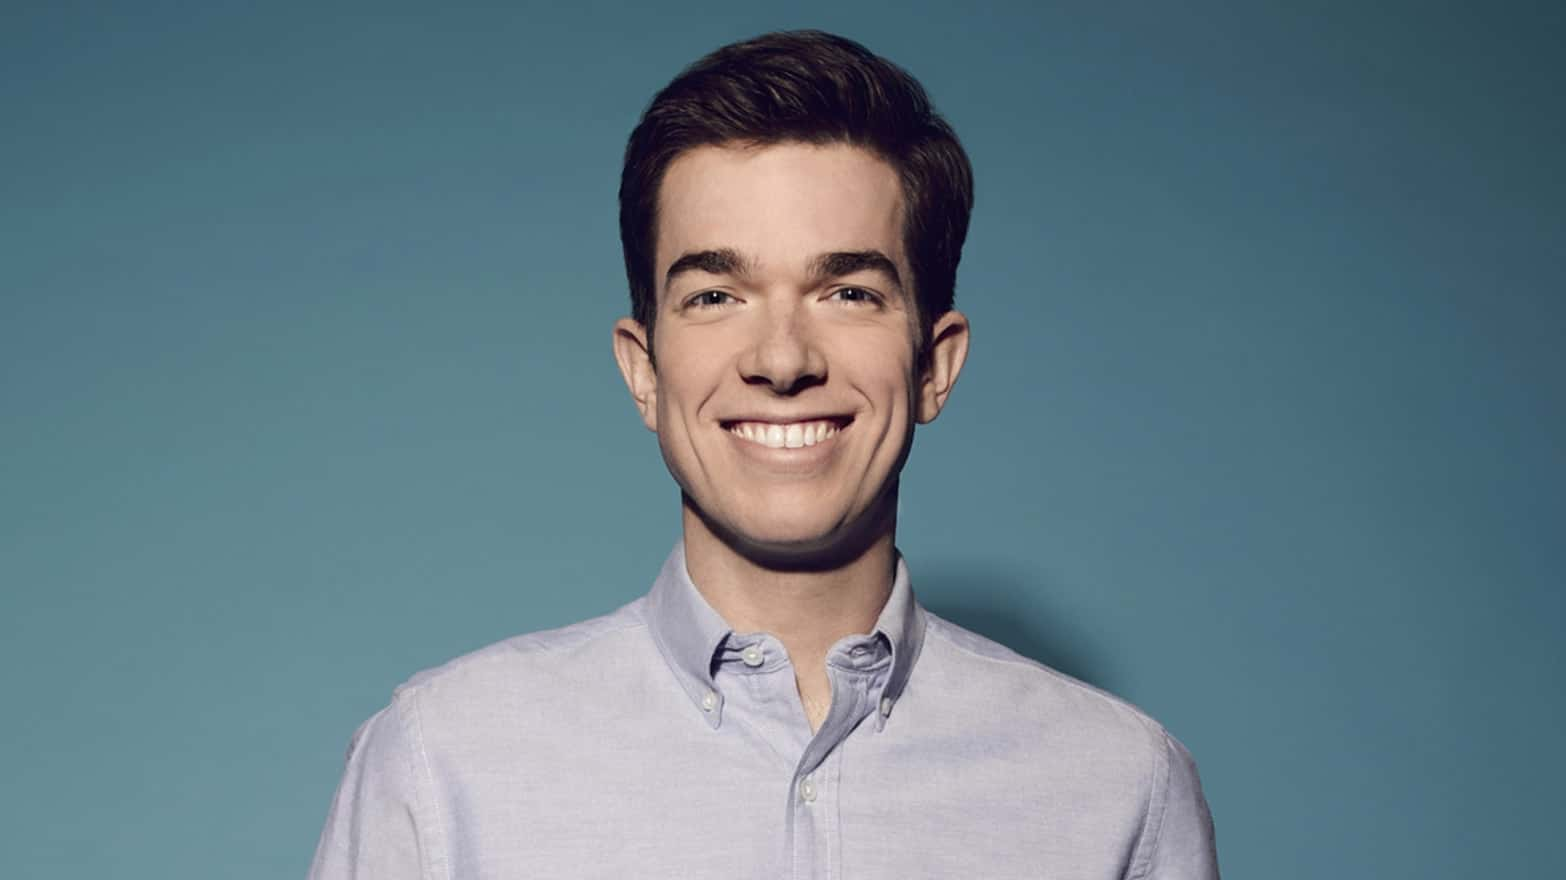 John Mulaney American Actor, Comedian, Writer, Producer